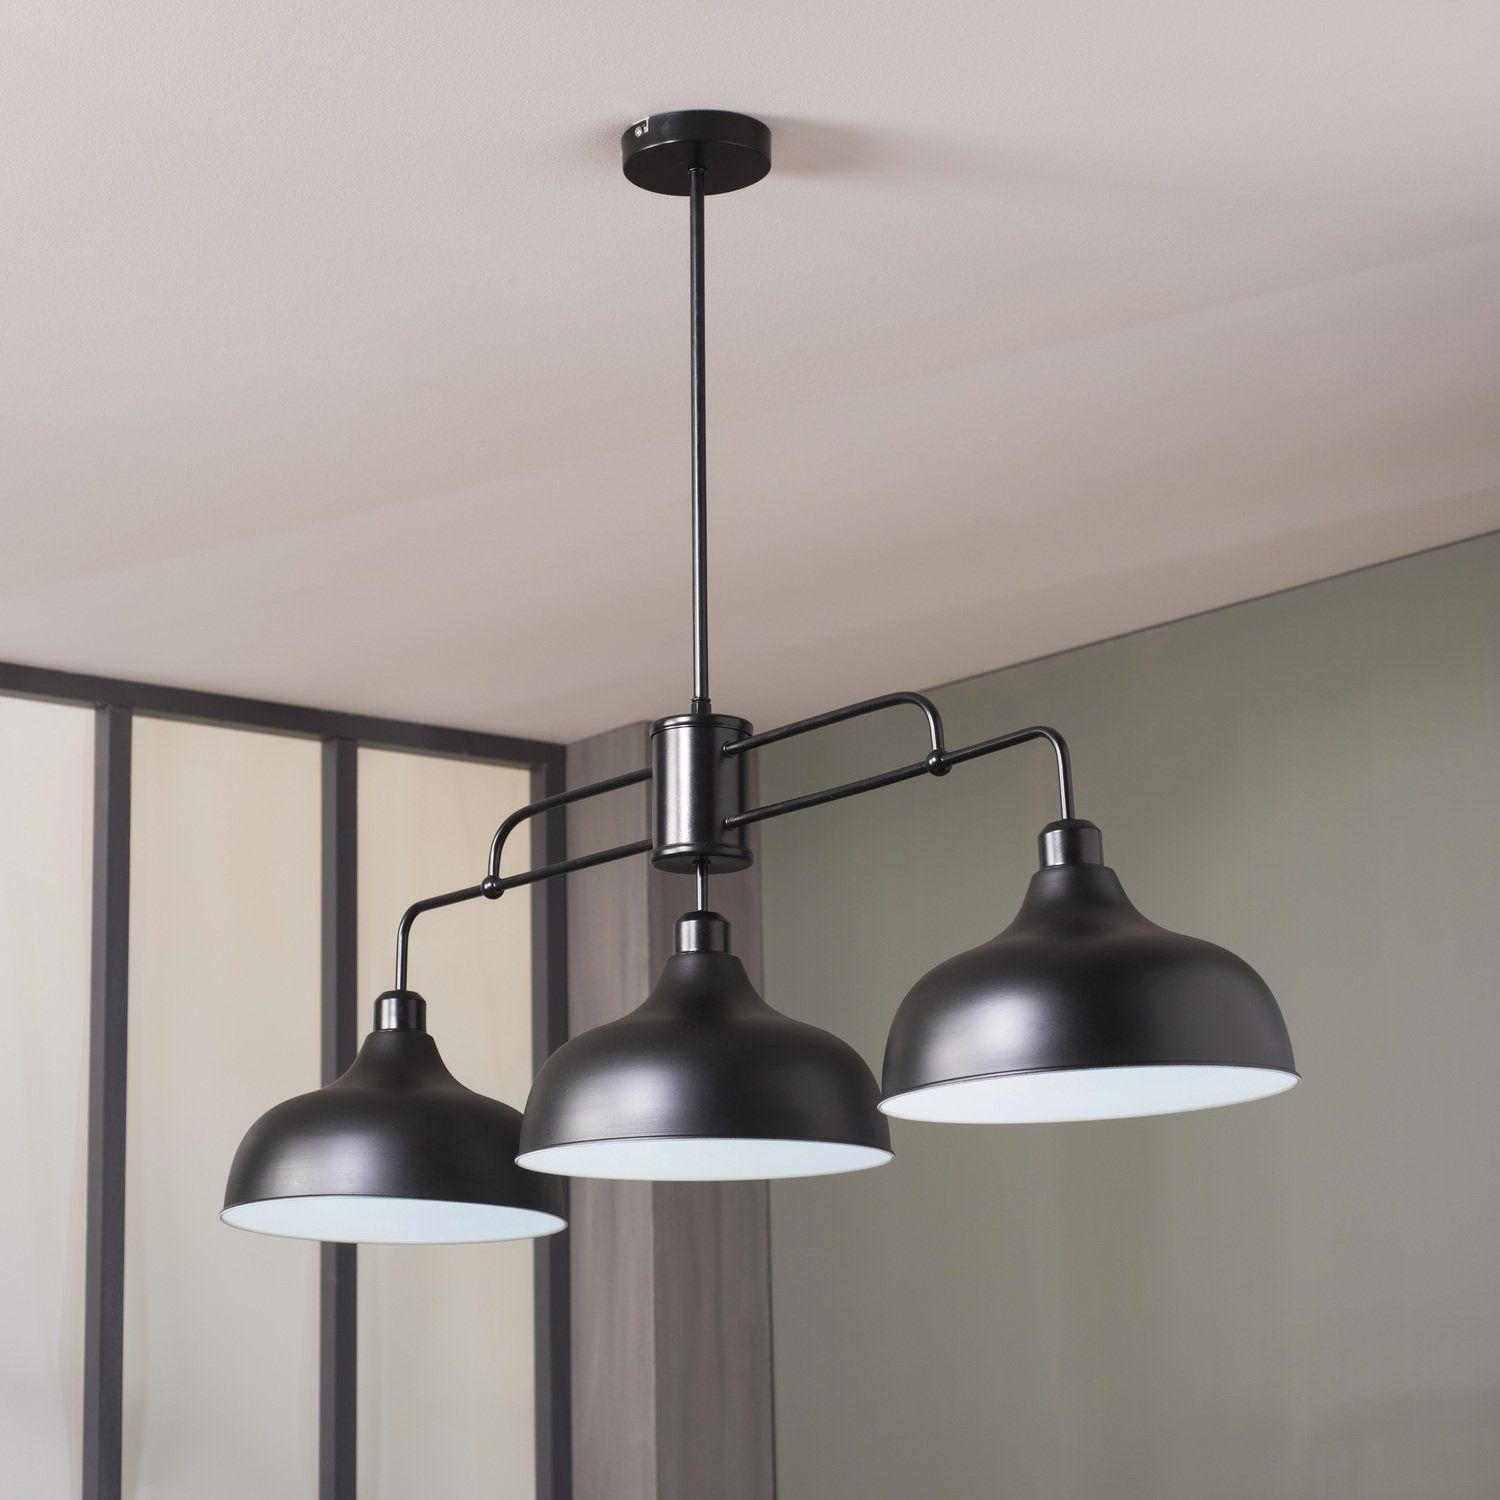 Admirable Cette suspension design adopte un style résolument industriel ZD-07